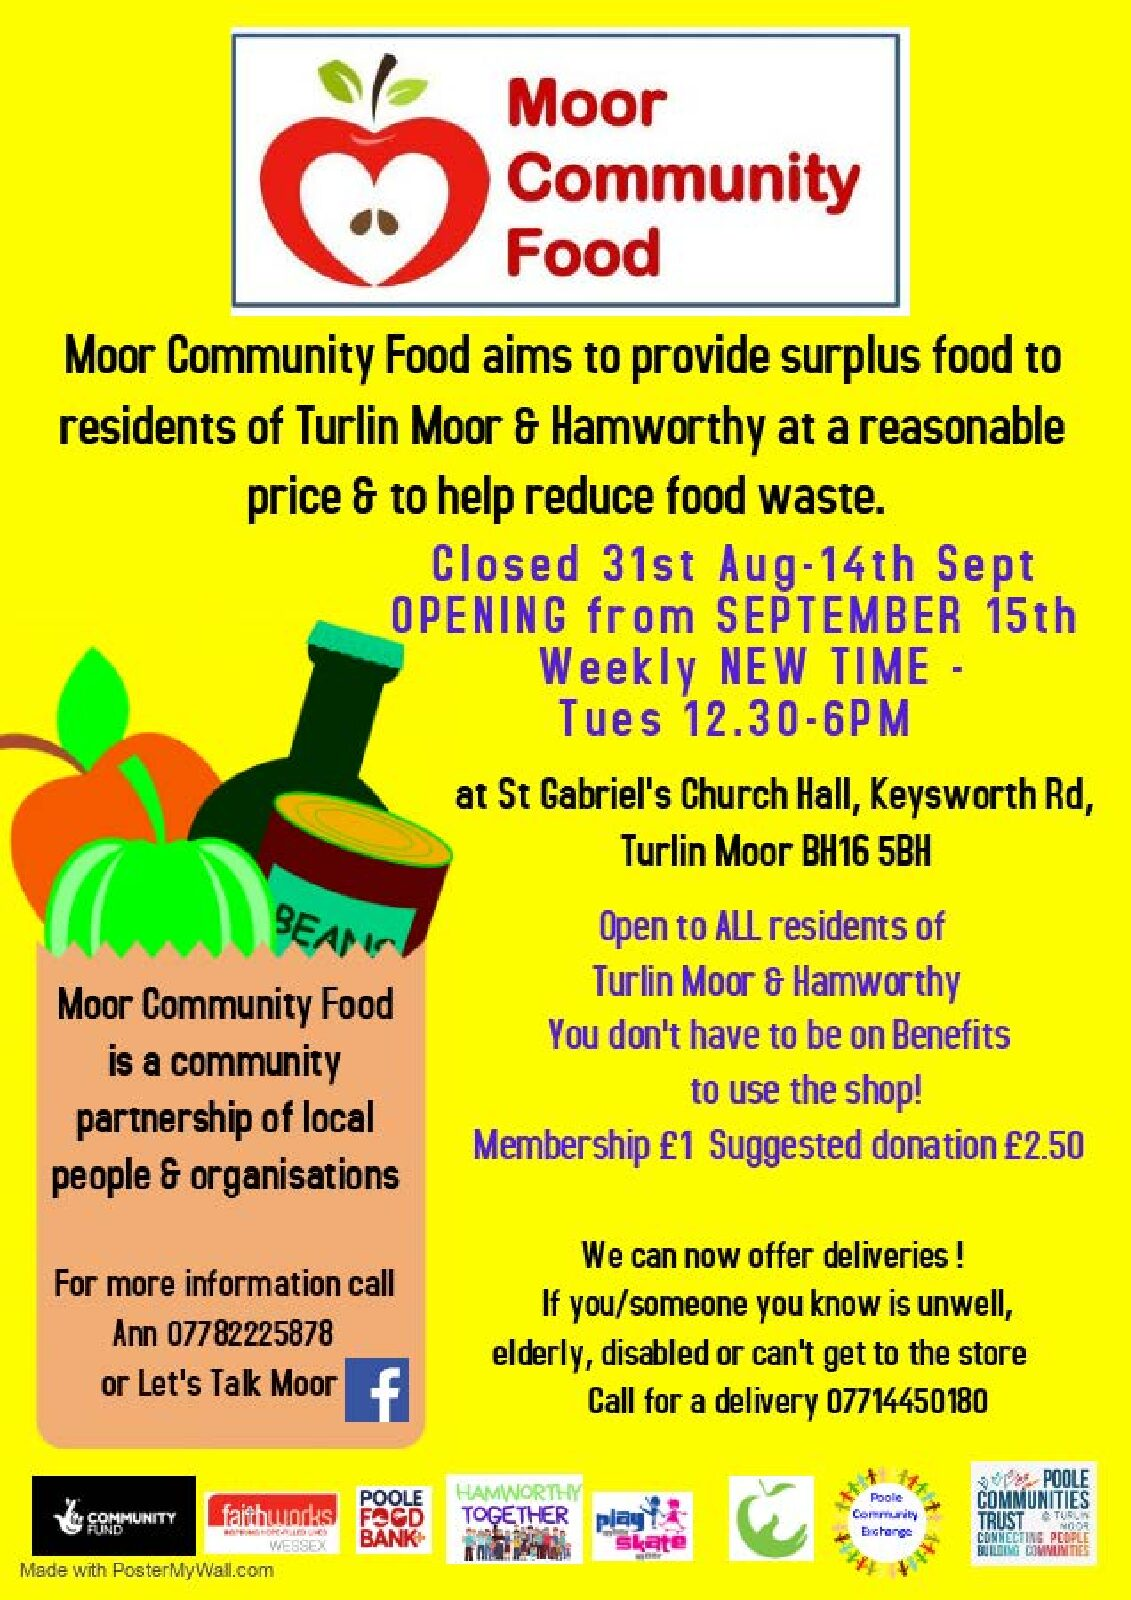 Delivery Service Now Offered by Moor Community Food Store